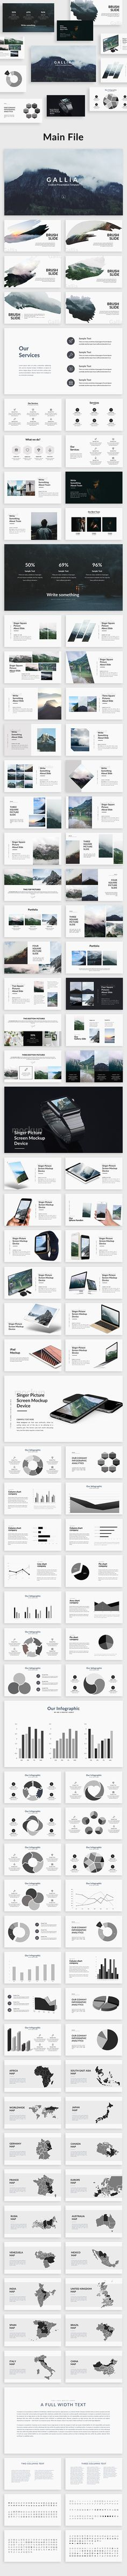 Gallia - Creative Powerpoint Template